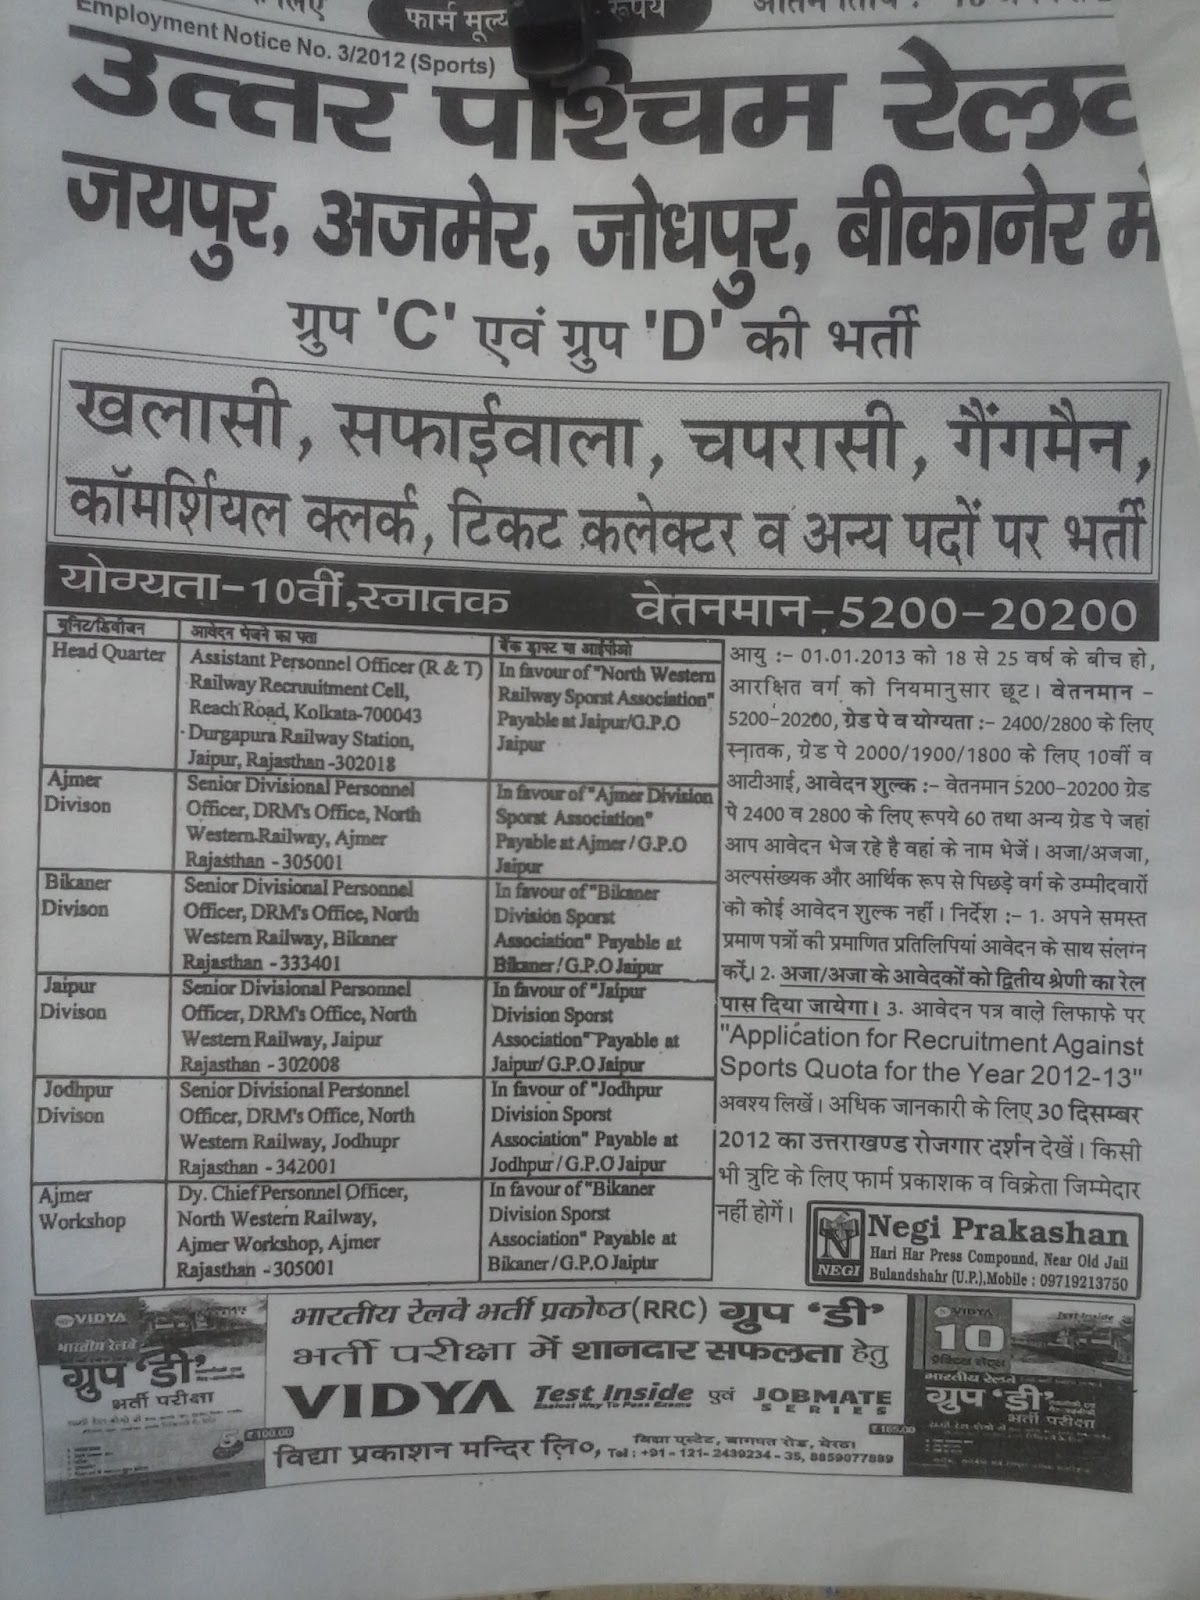 Uping Recruitment Southern Railways